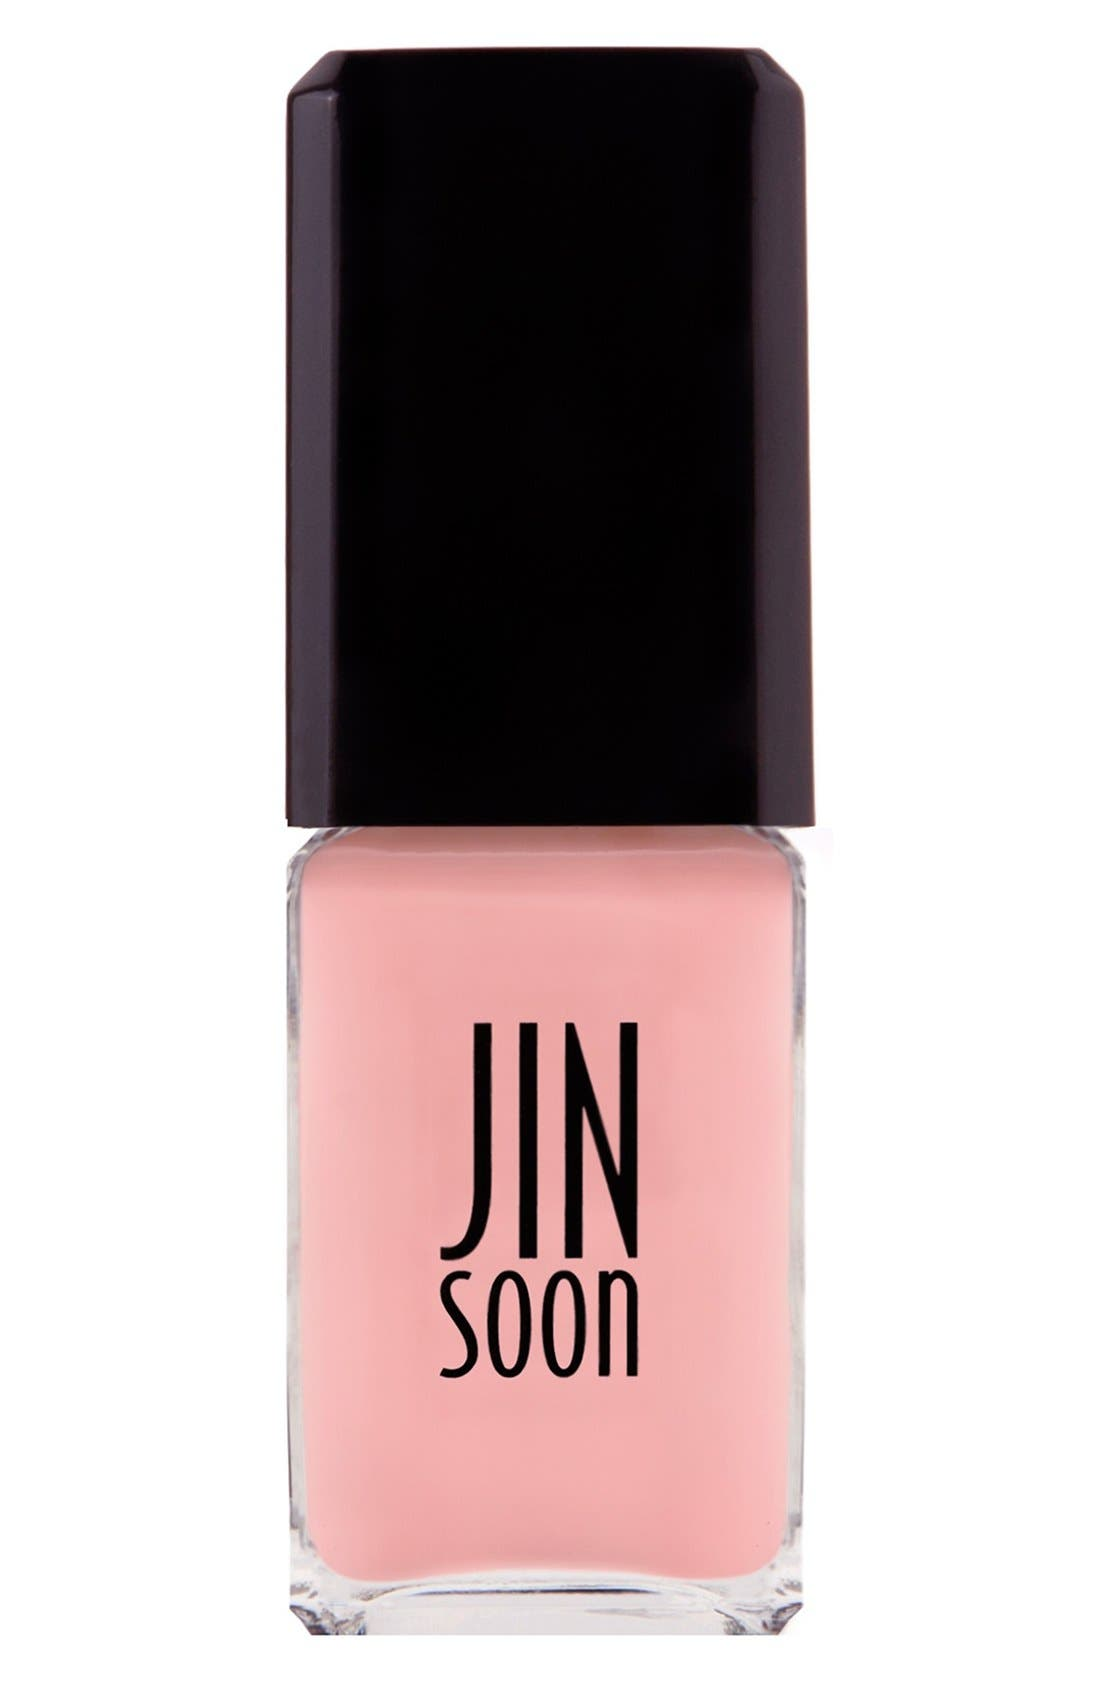 JINsoon 'Dolly Pink' Nail Lacquer